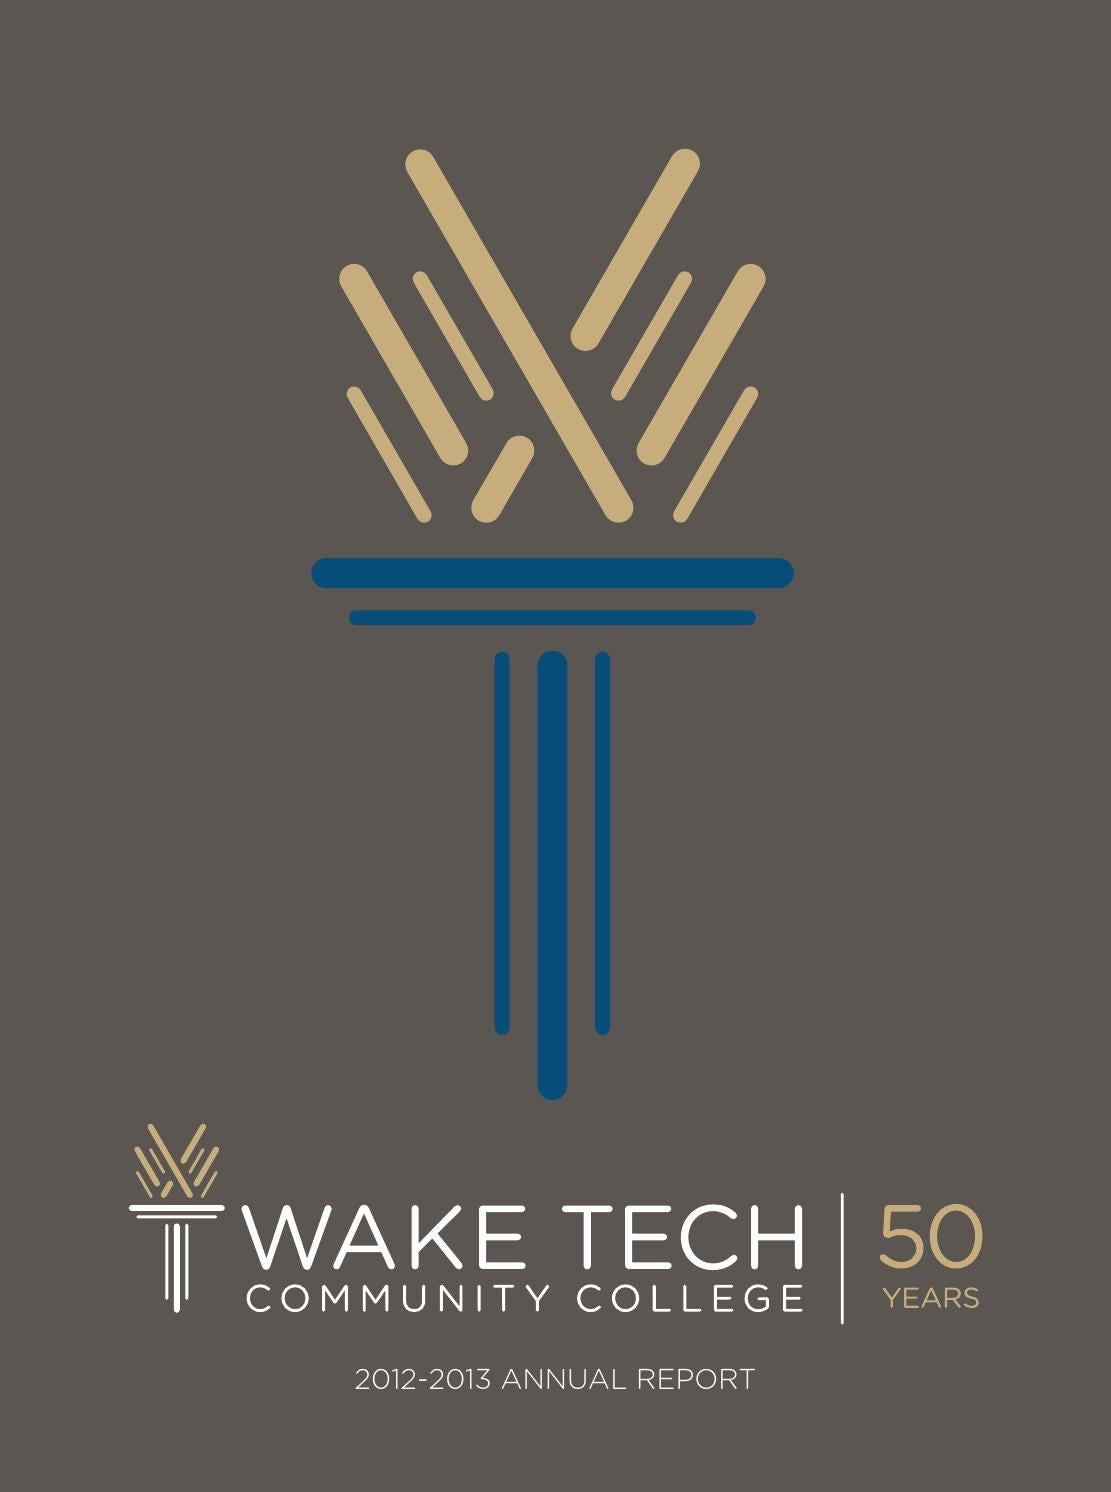 Wake tech annual report issuu edition by Wake Tech ...